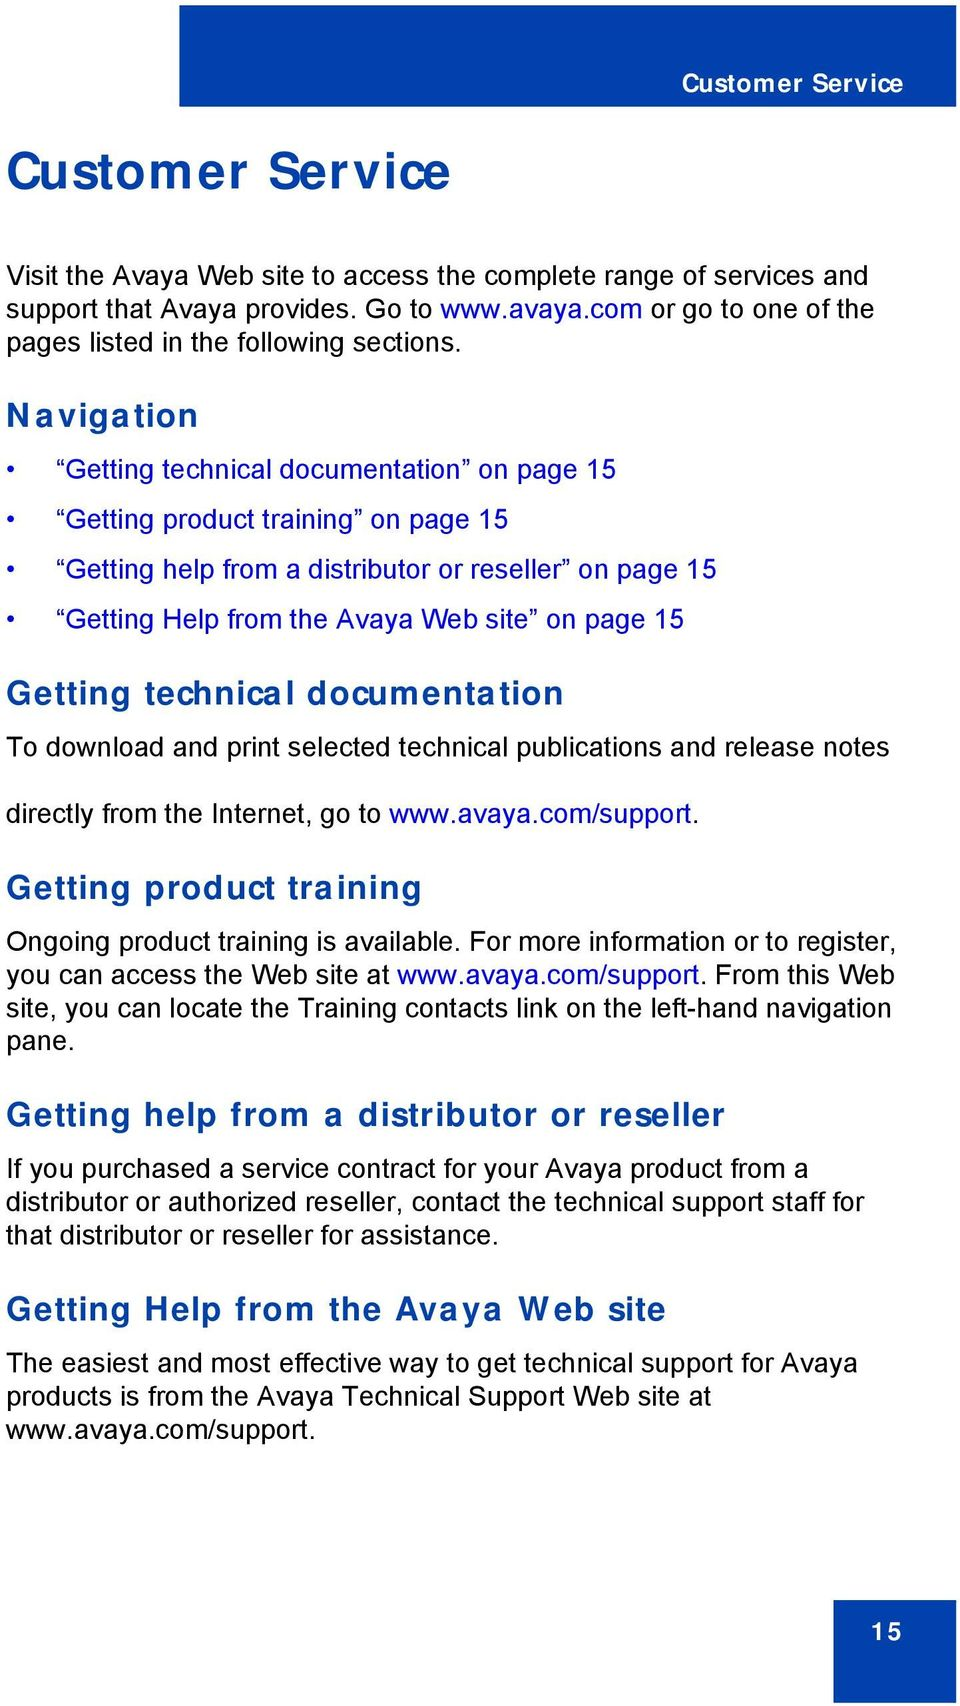 Navigation Getting technical documentation on page 15 Getting product training on page 15 Getting help from a distributor or reseller on page 15 Getting Help from the Avaya Web site on page 15